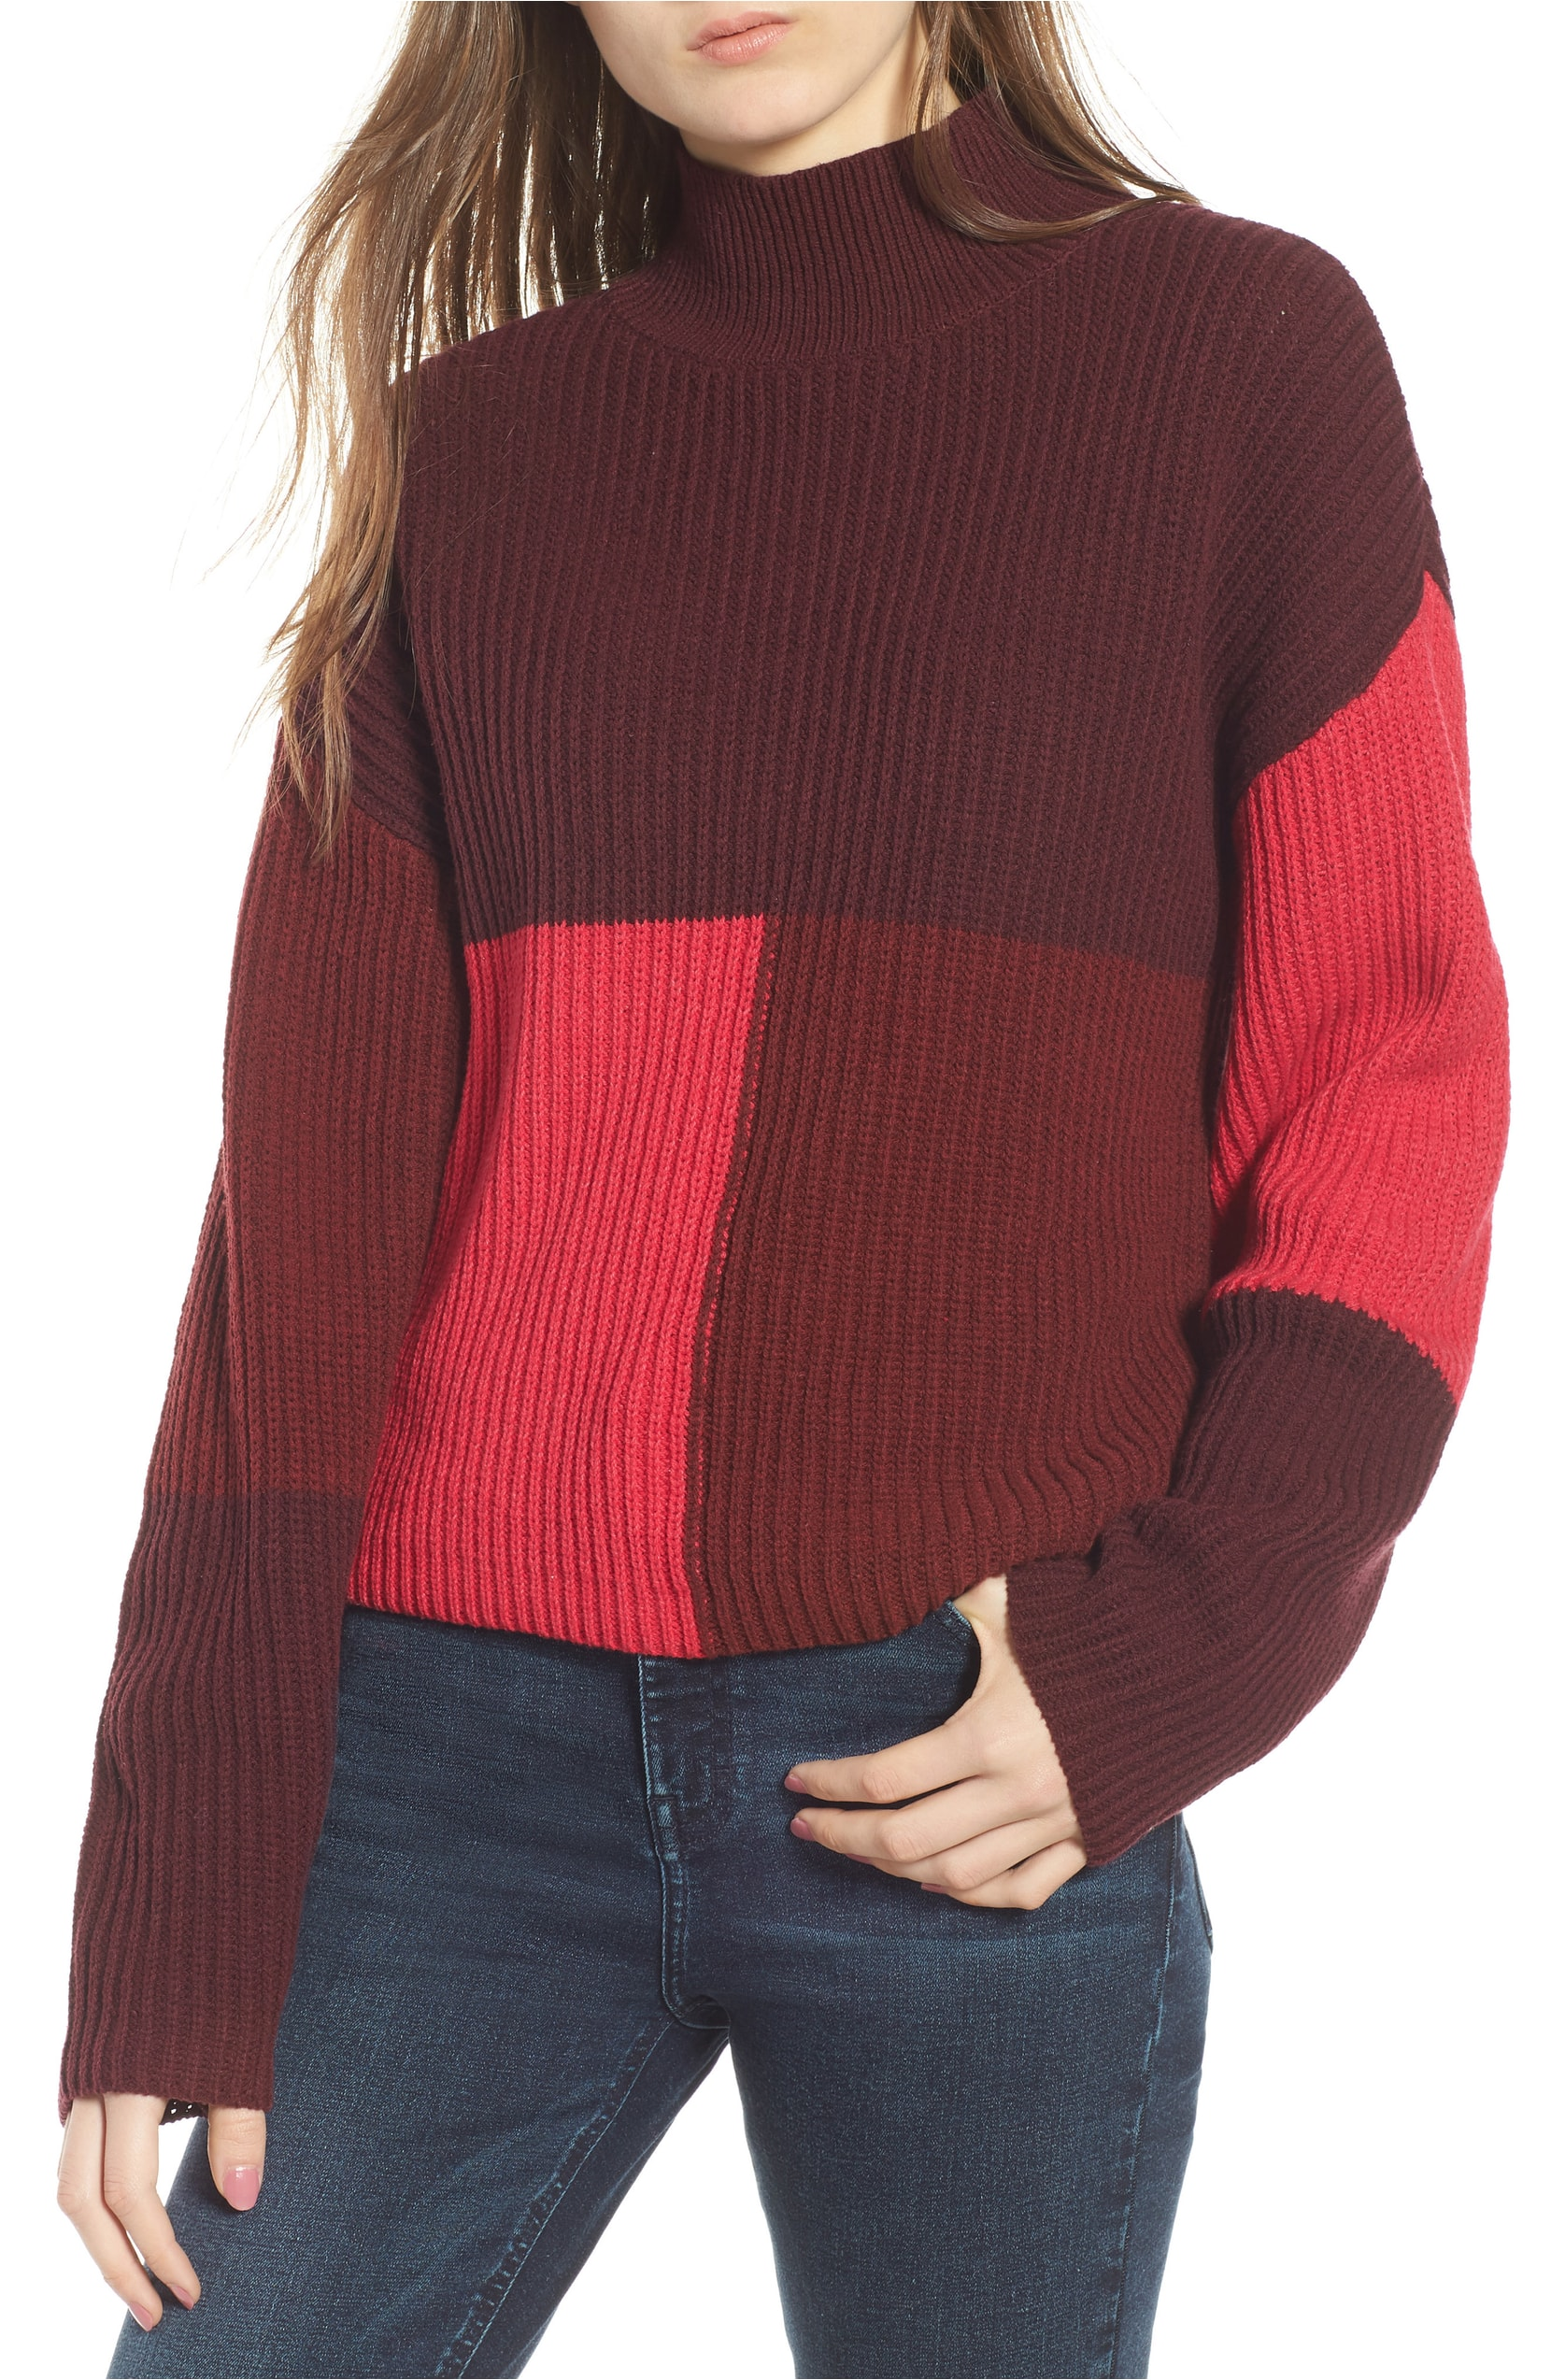 Mock Neck Colorblock Sweater. Sale:$31.90 / After Sale:$49.00. (Image: Nordstrom){ }